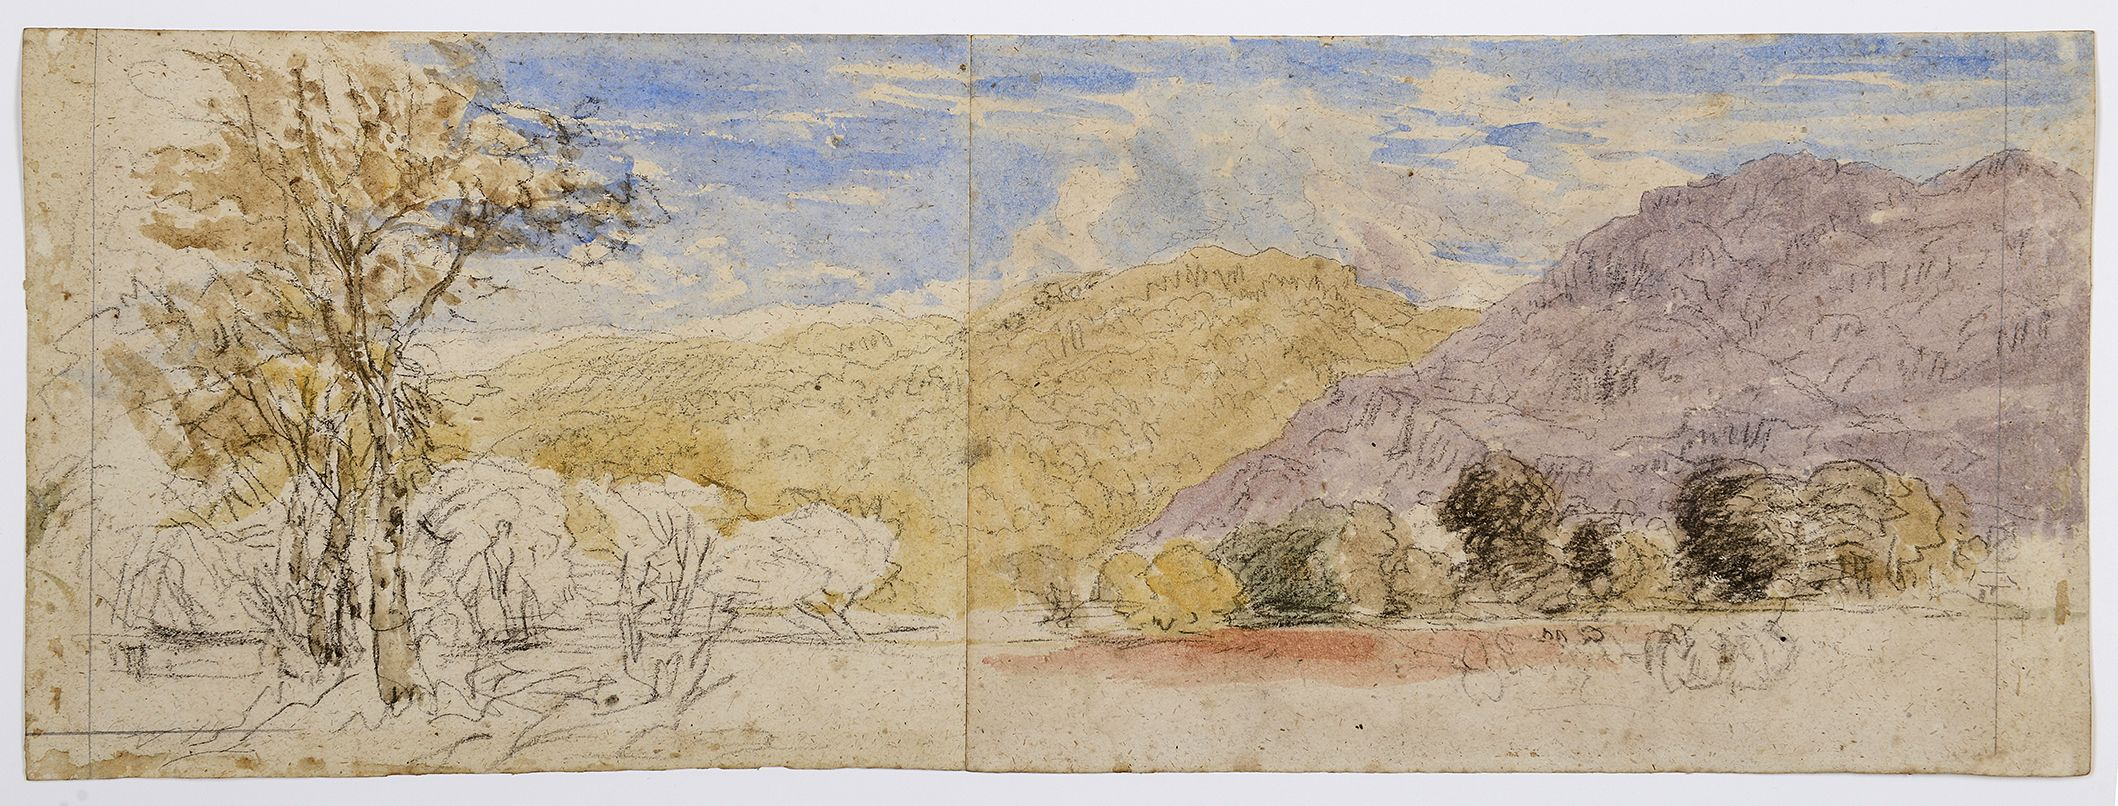 David Cox, English, 1783–1859: Mountainous Landscape, North Wales, late 1840s–early 1850s. Watercolor and black chalk on two joined sheets of heavy oatmeal wove paper. Museum purchase, Surdna Fund (2017-217)